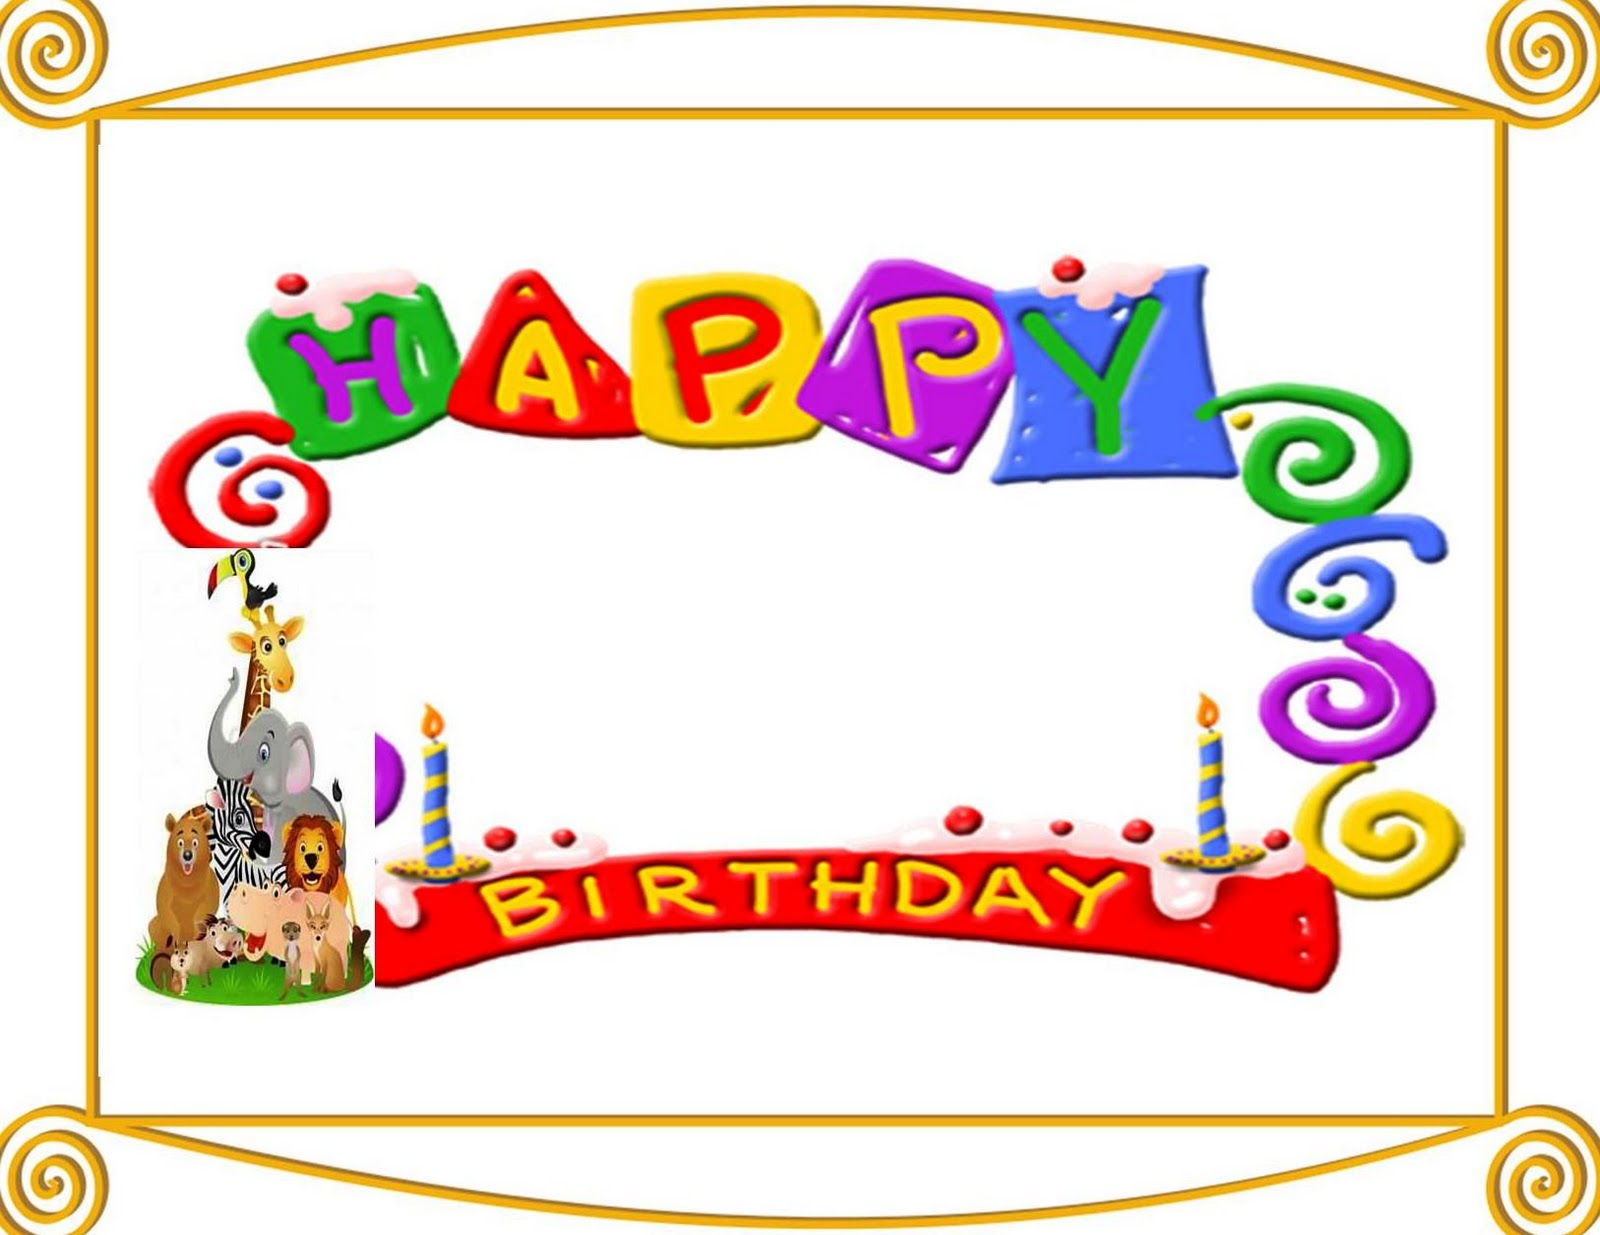 happy birthday borders microsoft word ; Happy-birthday-border-2-free-clip-art-images